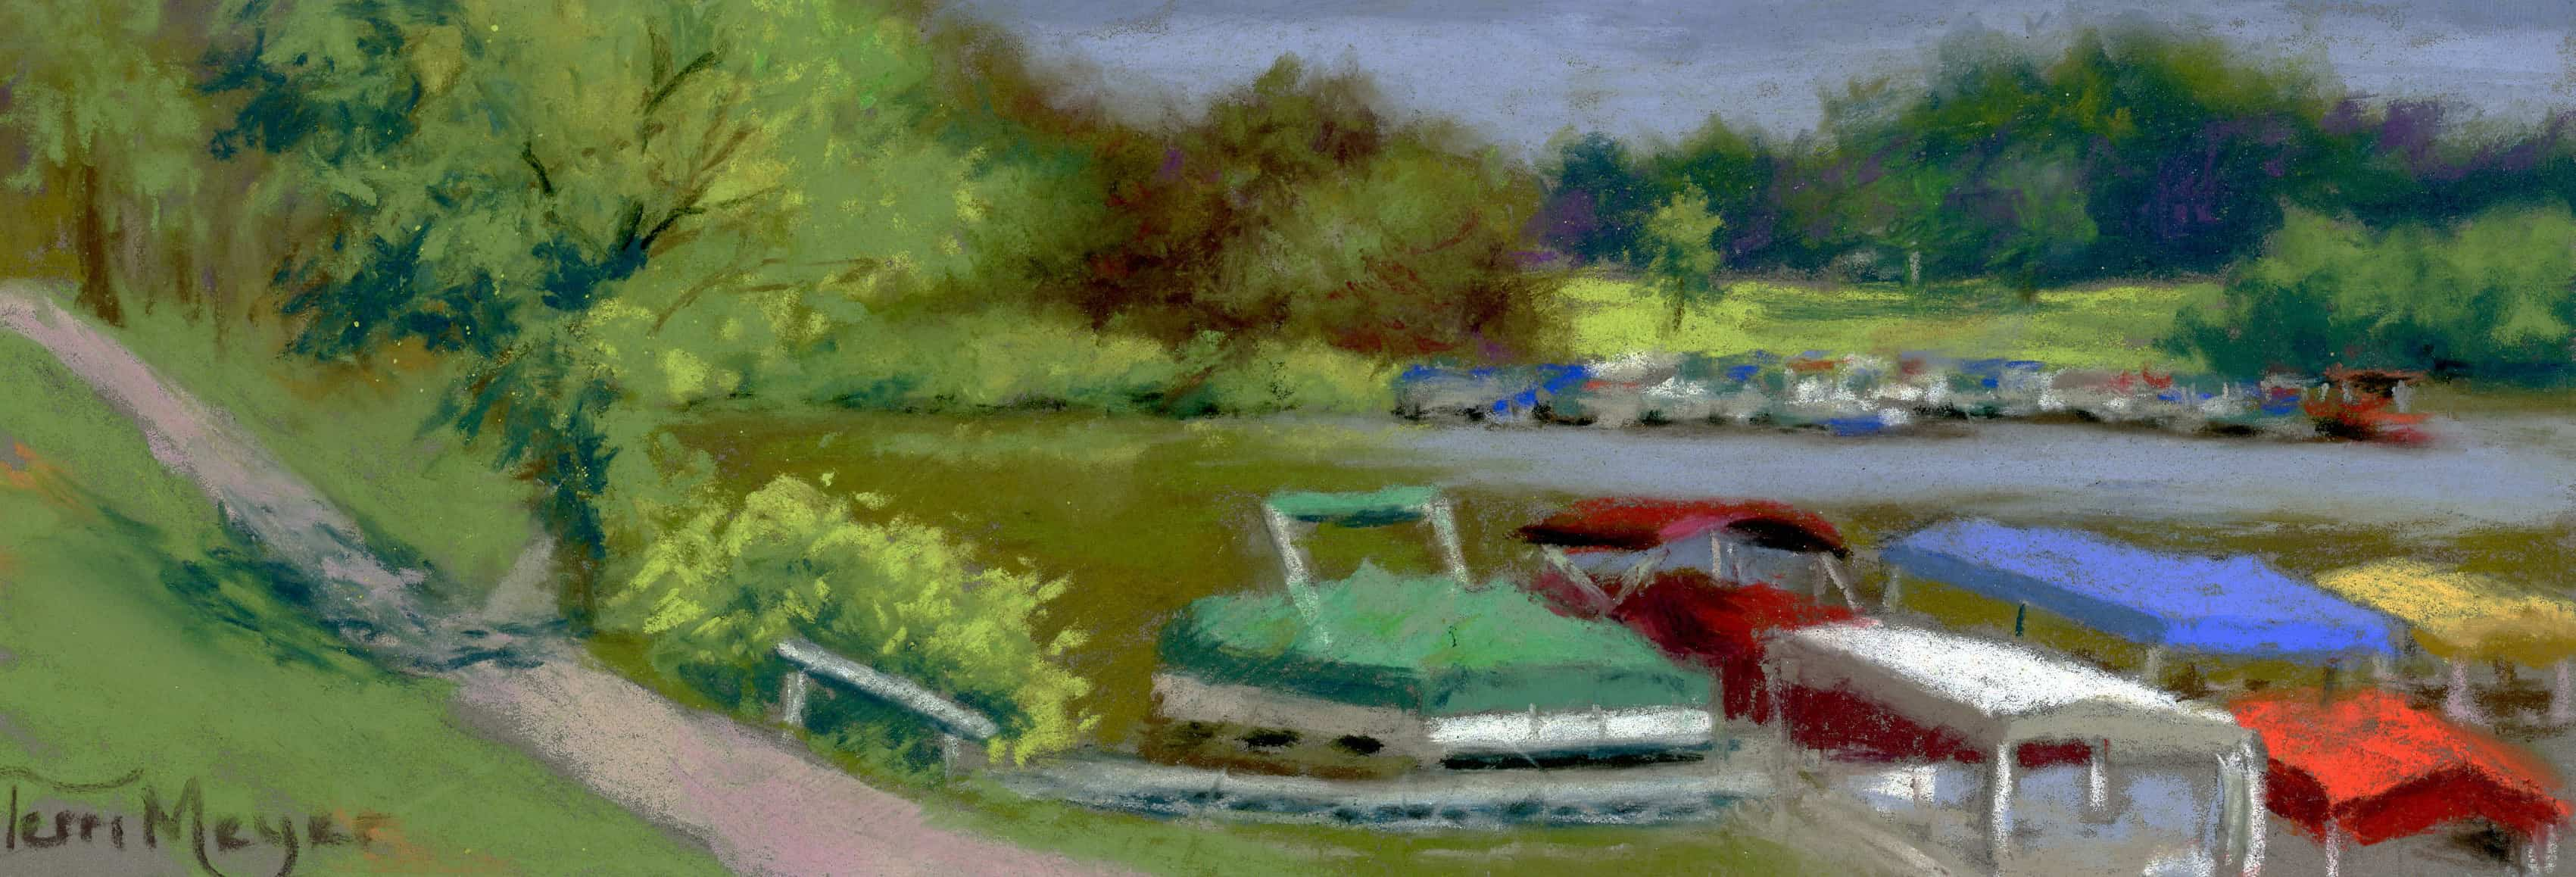 Pontoon Boats at Charles Mill Lake - Painting by Ohio Artist Terri Meyer, Plein Air Landscape Painting